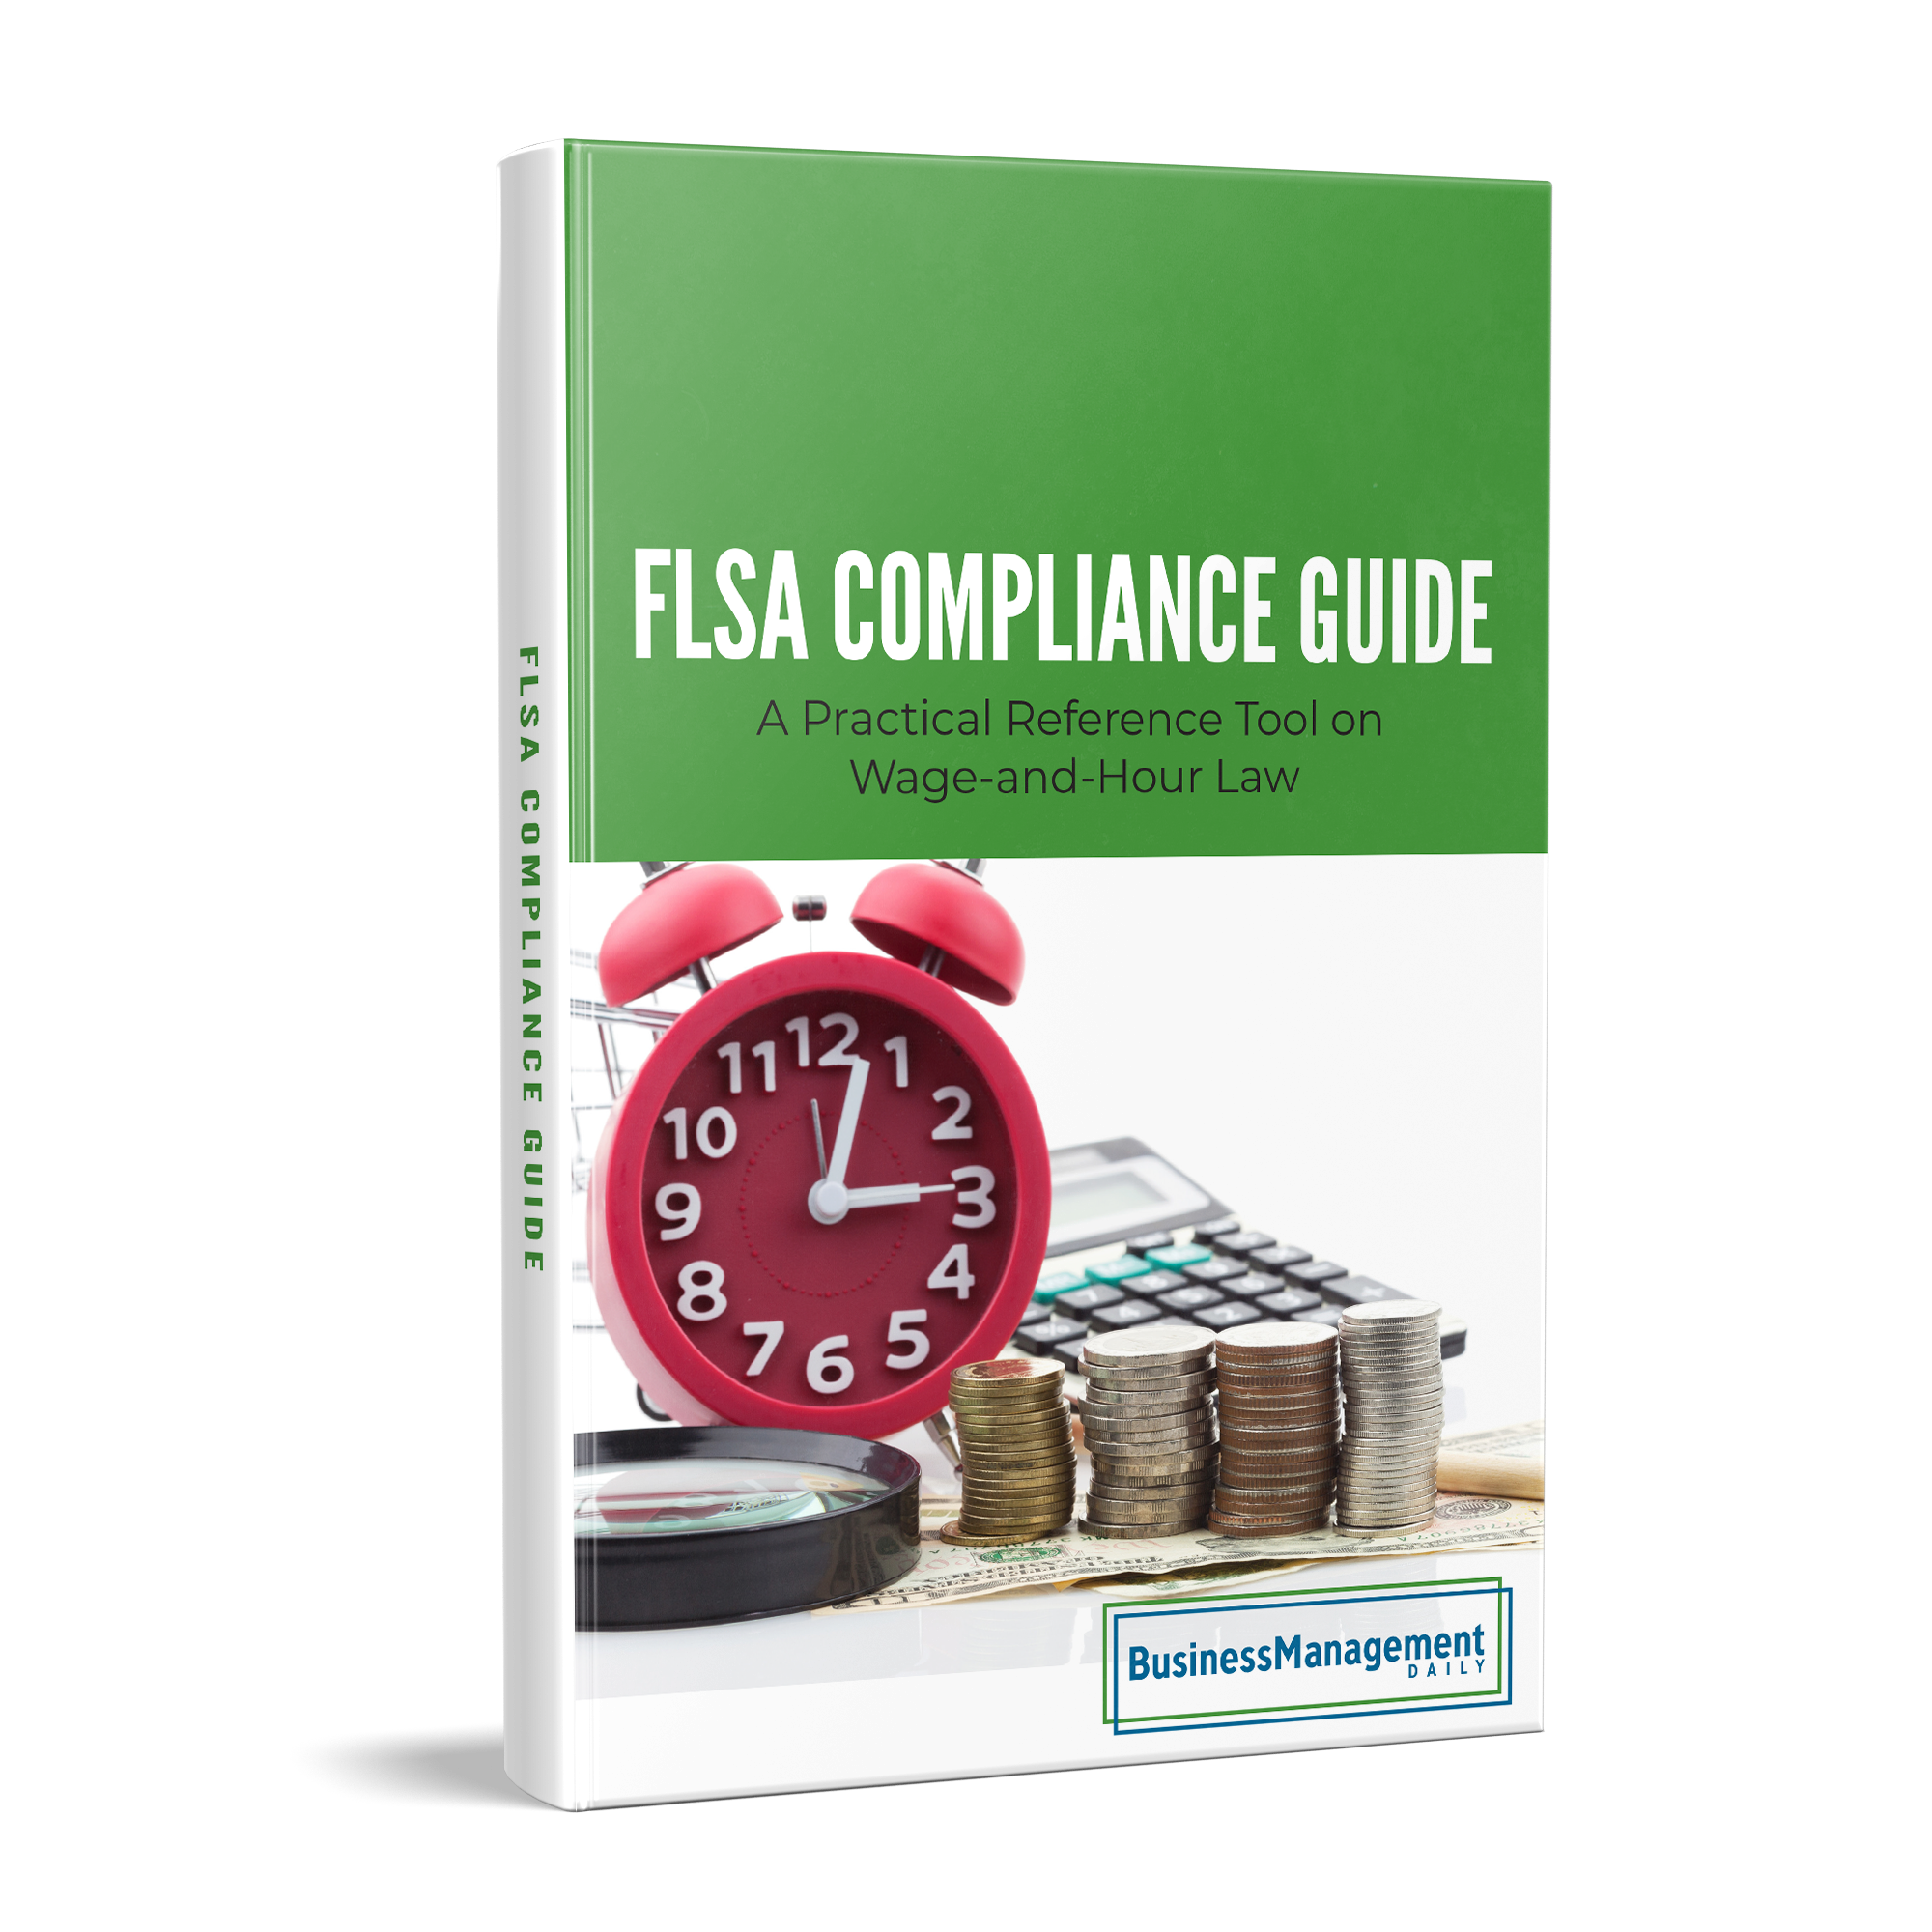 FLSA Compliance Guide: A Practical Reference Tool to Wage-and-Hour Law Book